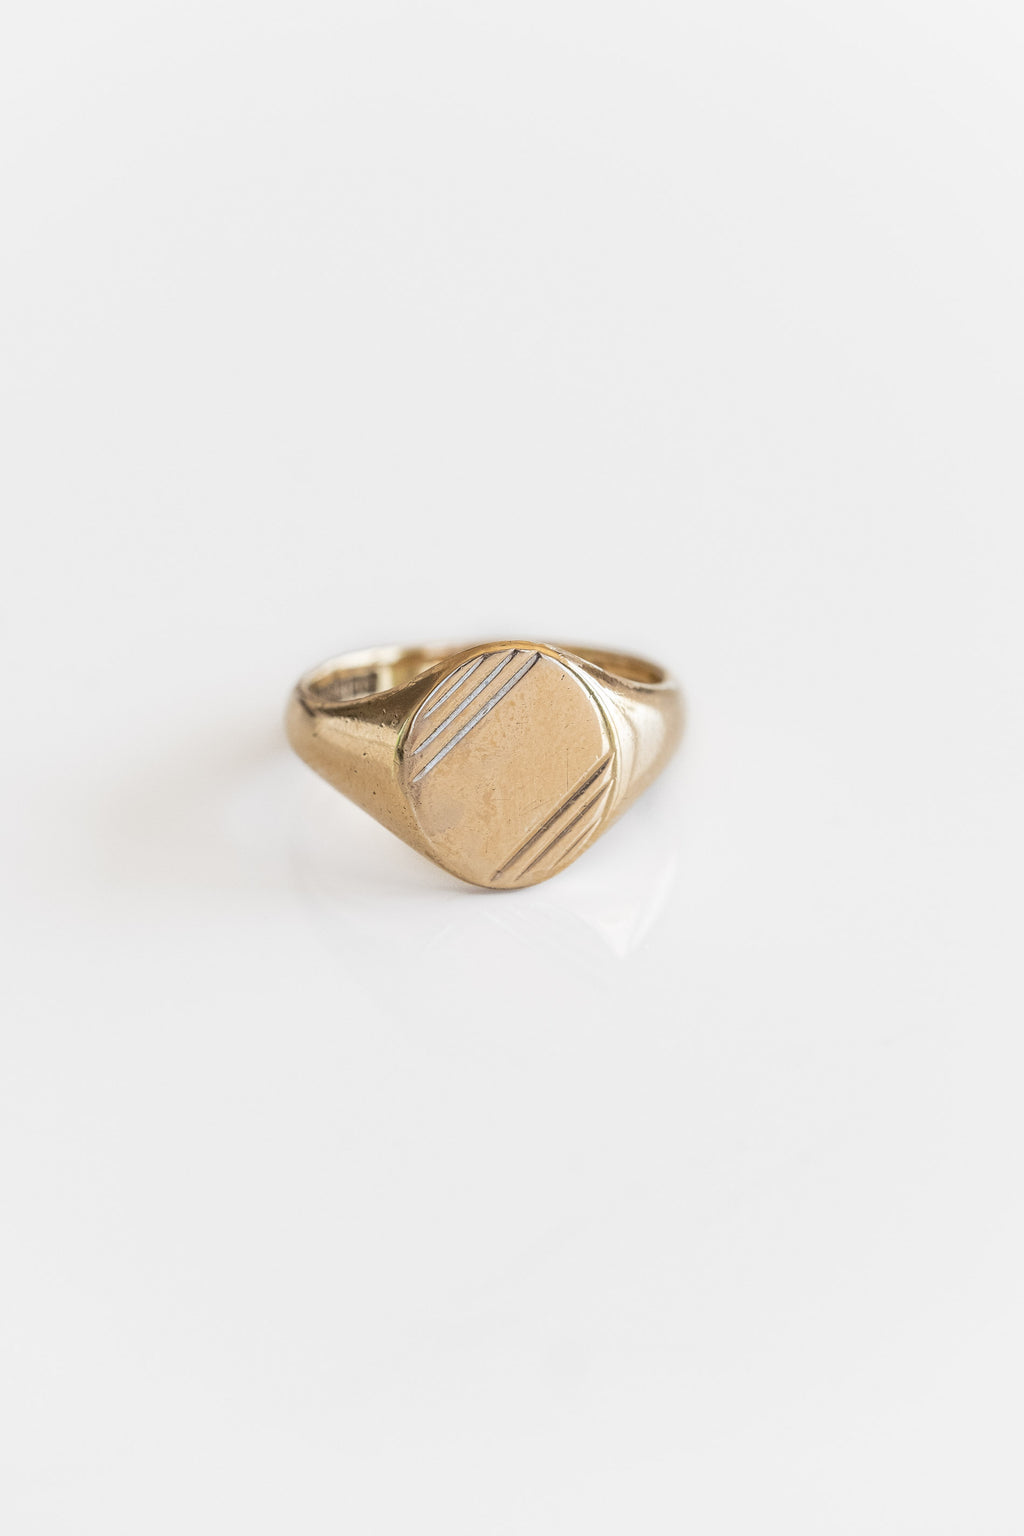 9K ETCHED OVAL SIGNET RING